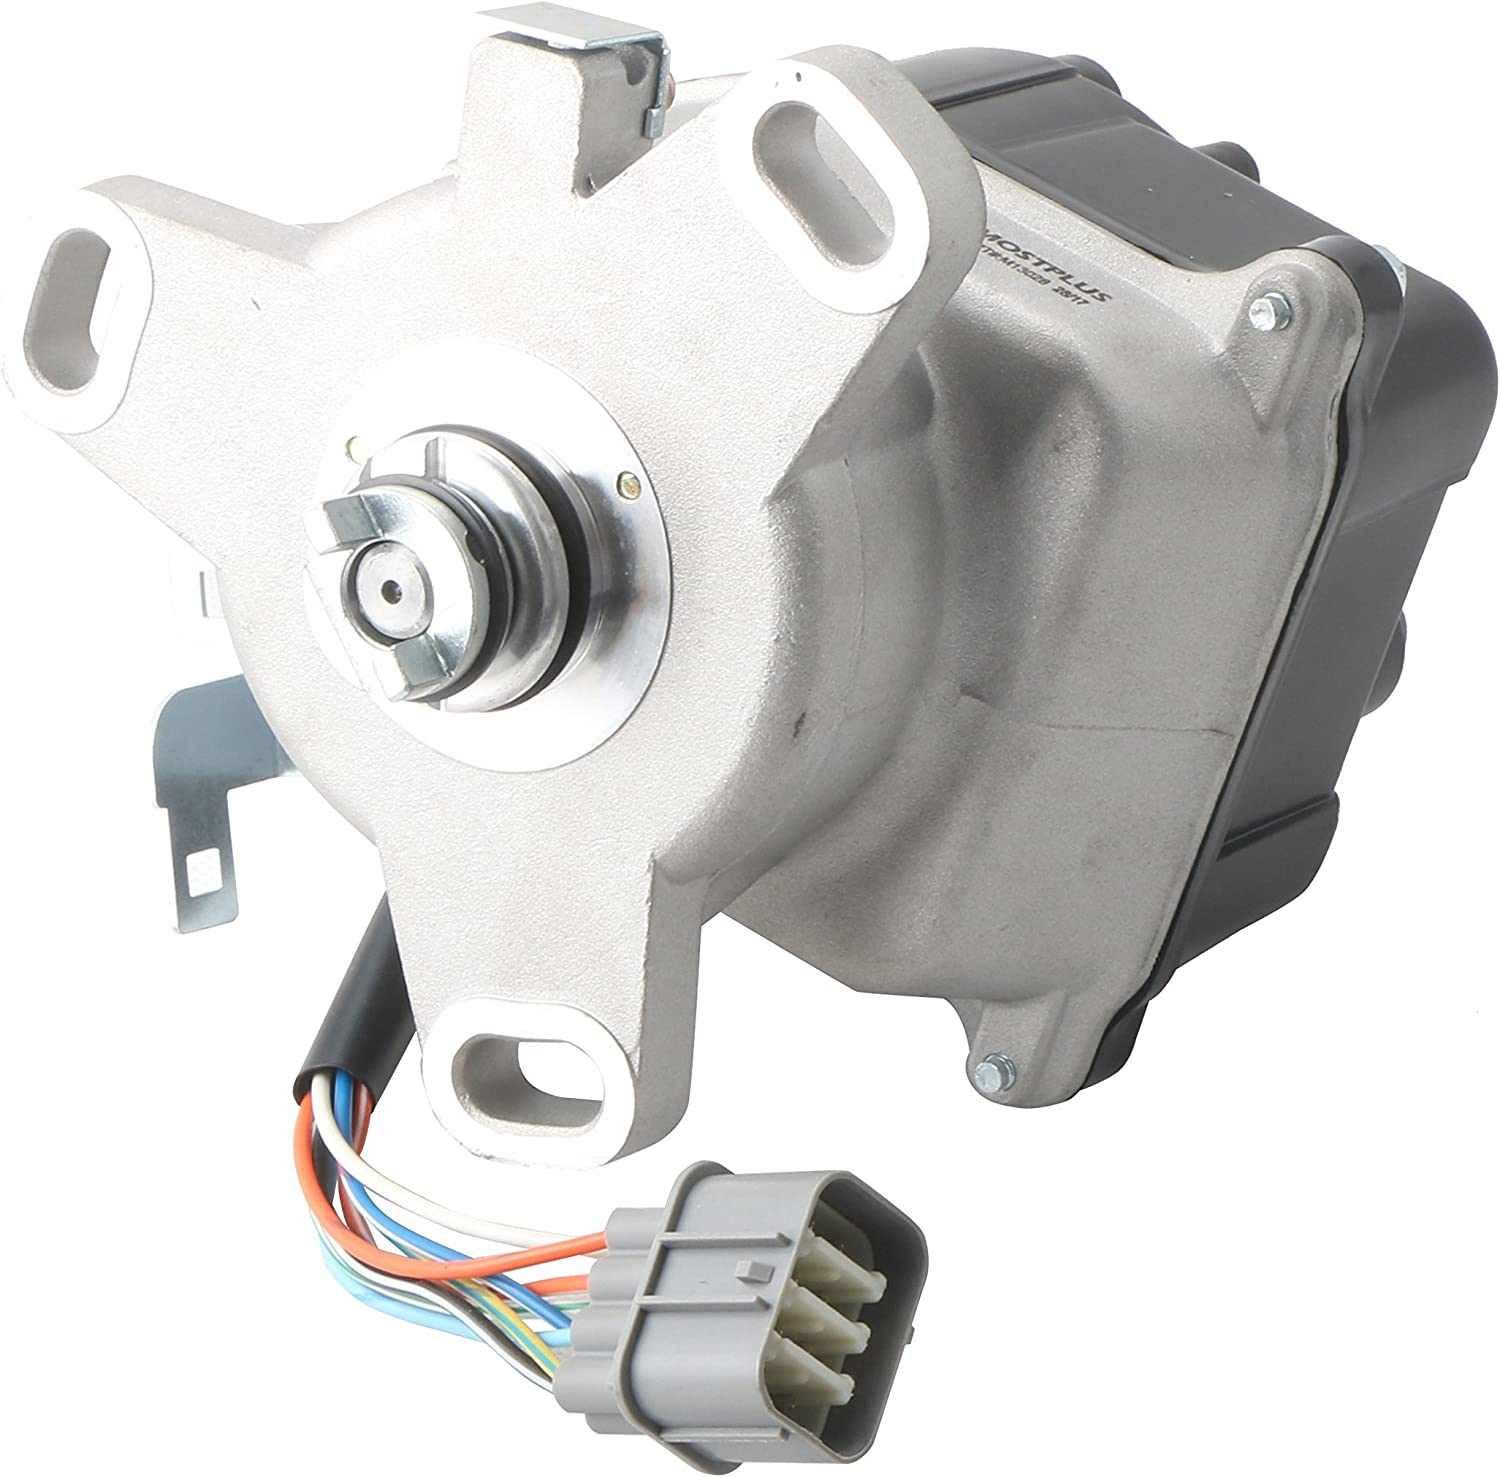 MOSTPLUS Ignition Distributor for 99-00 Honda Civic With TEC Acura Honda Replaces TD-63U TD-91U